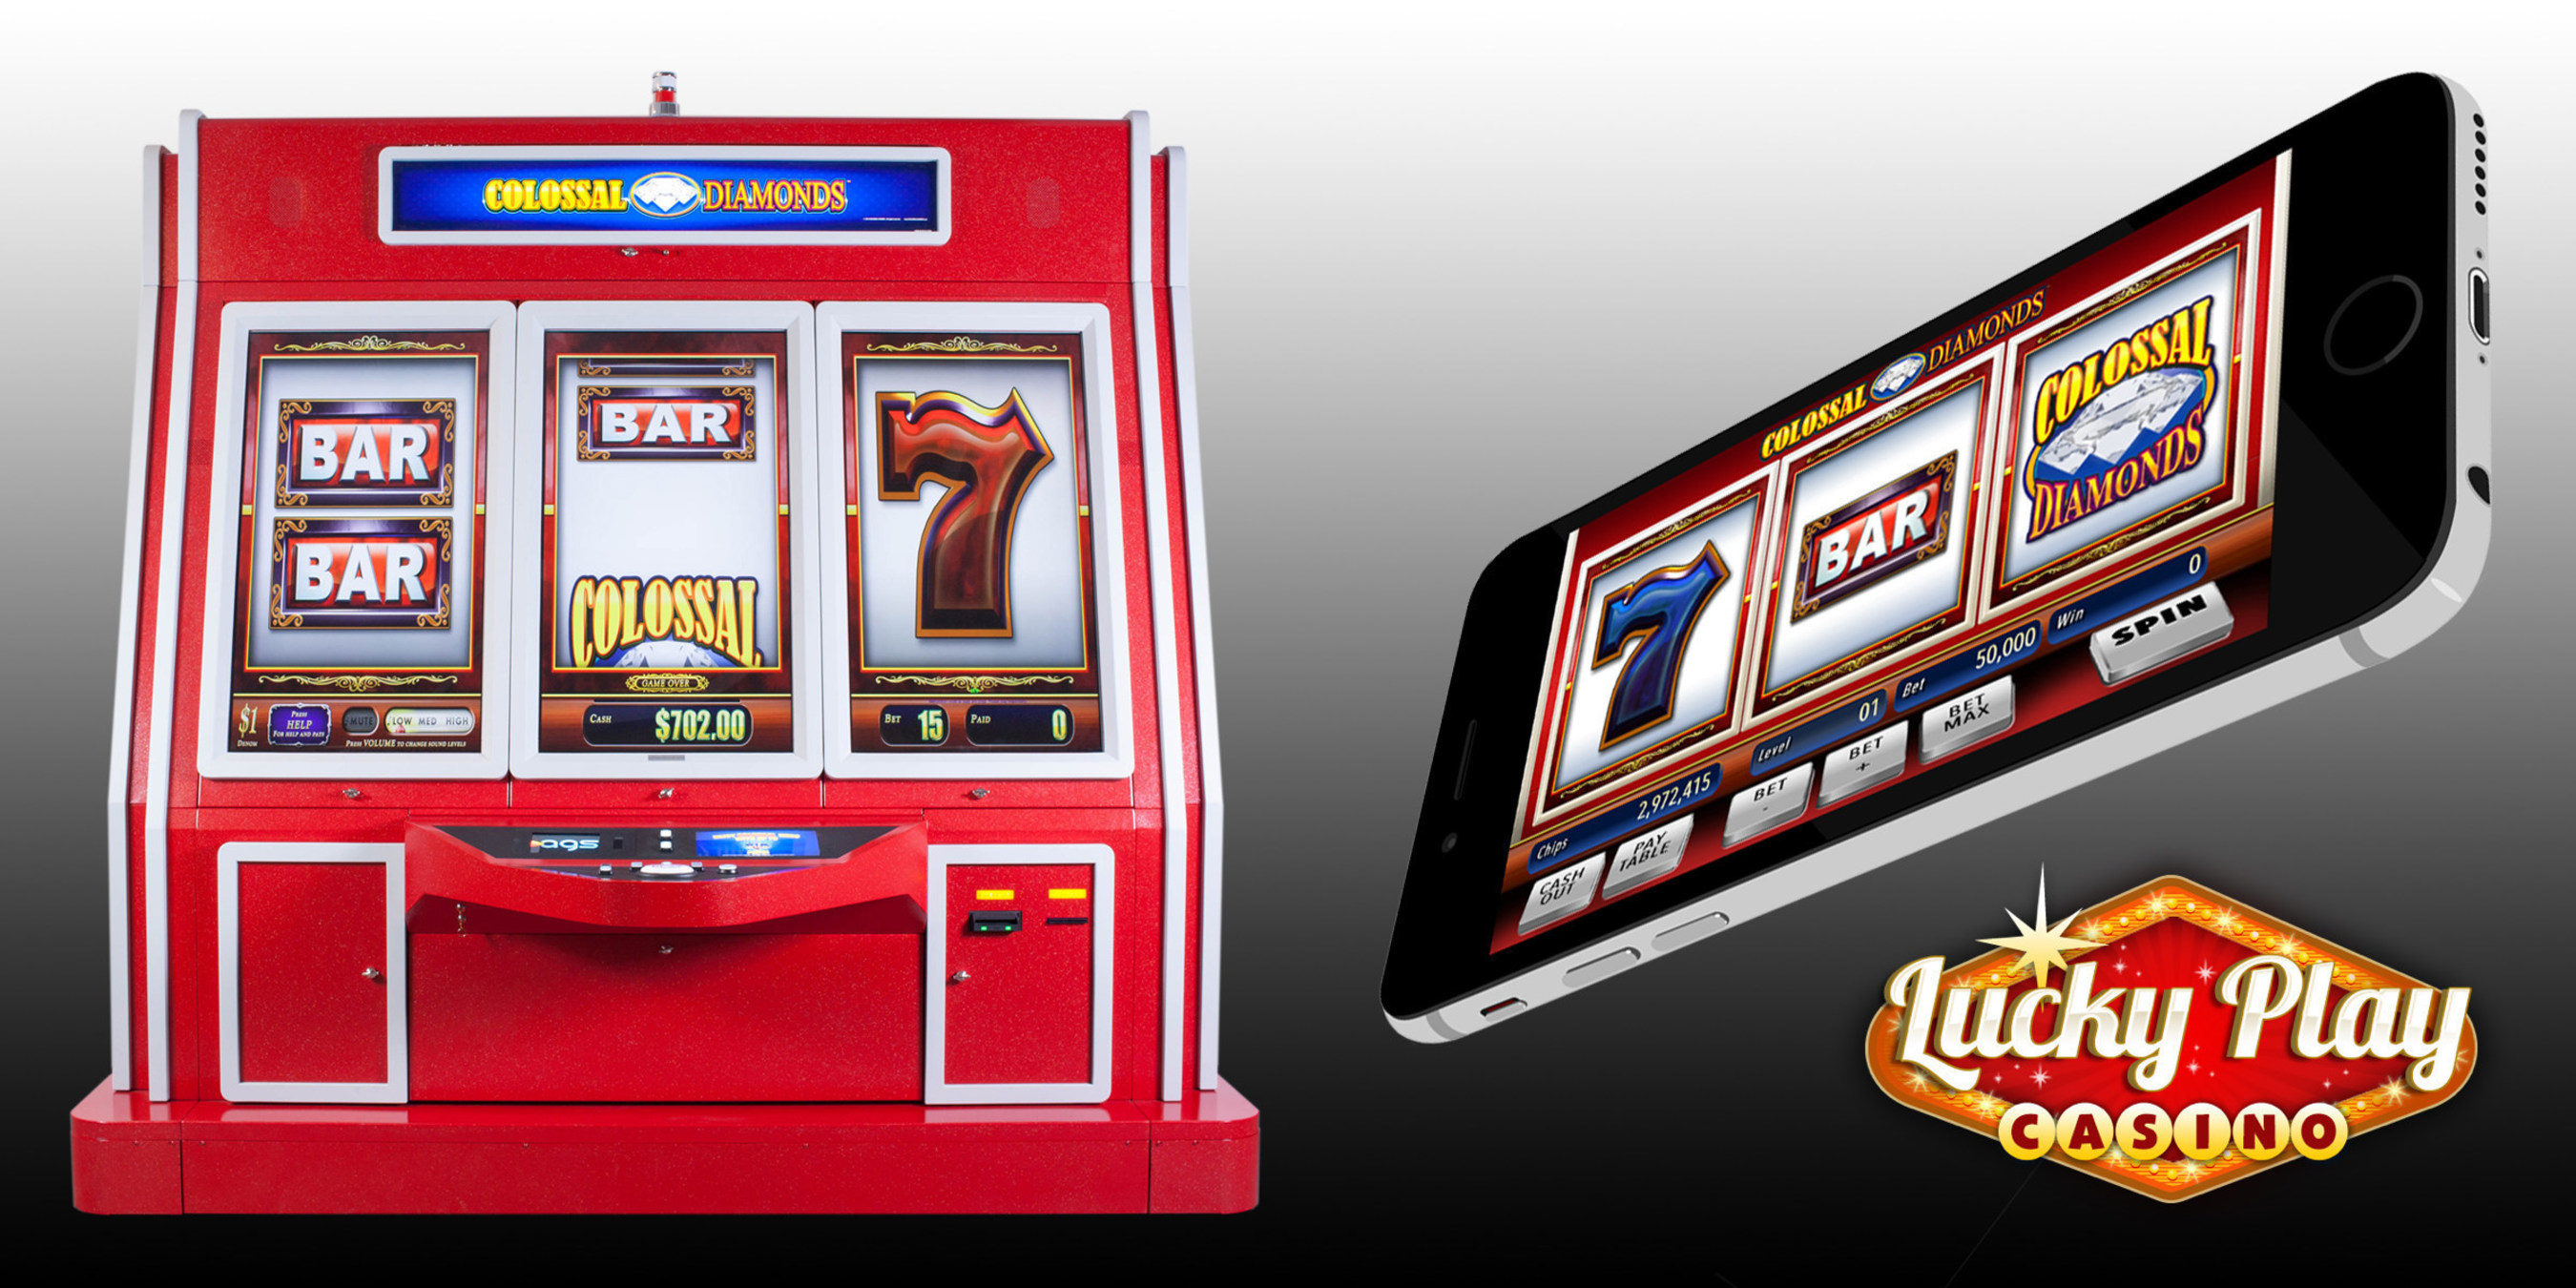 AGS Receives Approval for its High-Performing Colossal Diamonds(R) Slot Game in Nevada